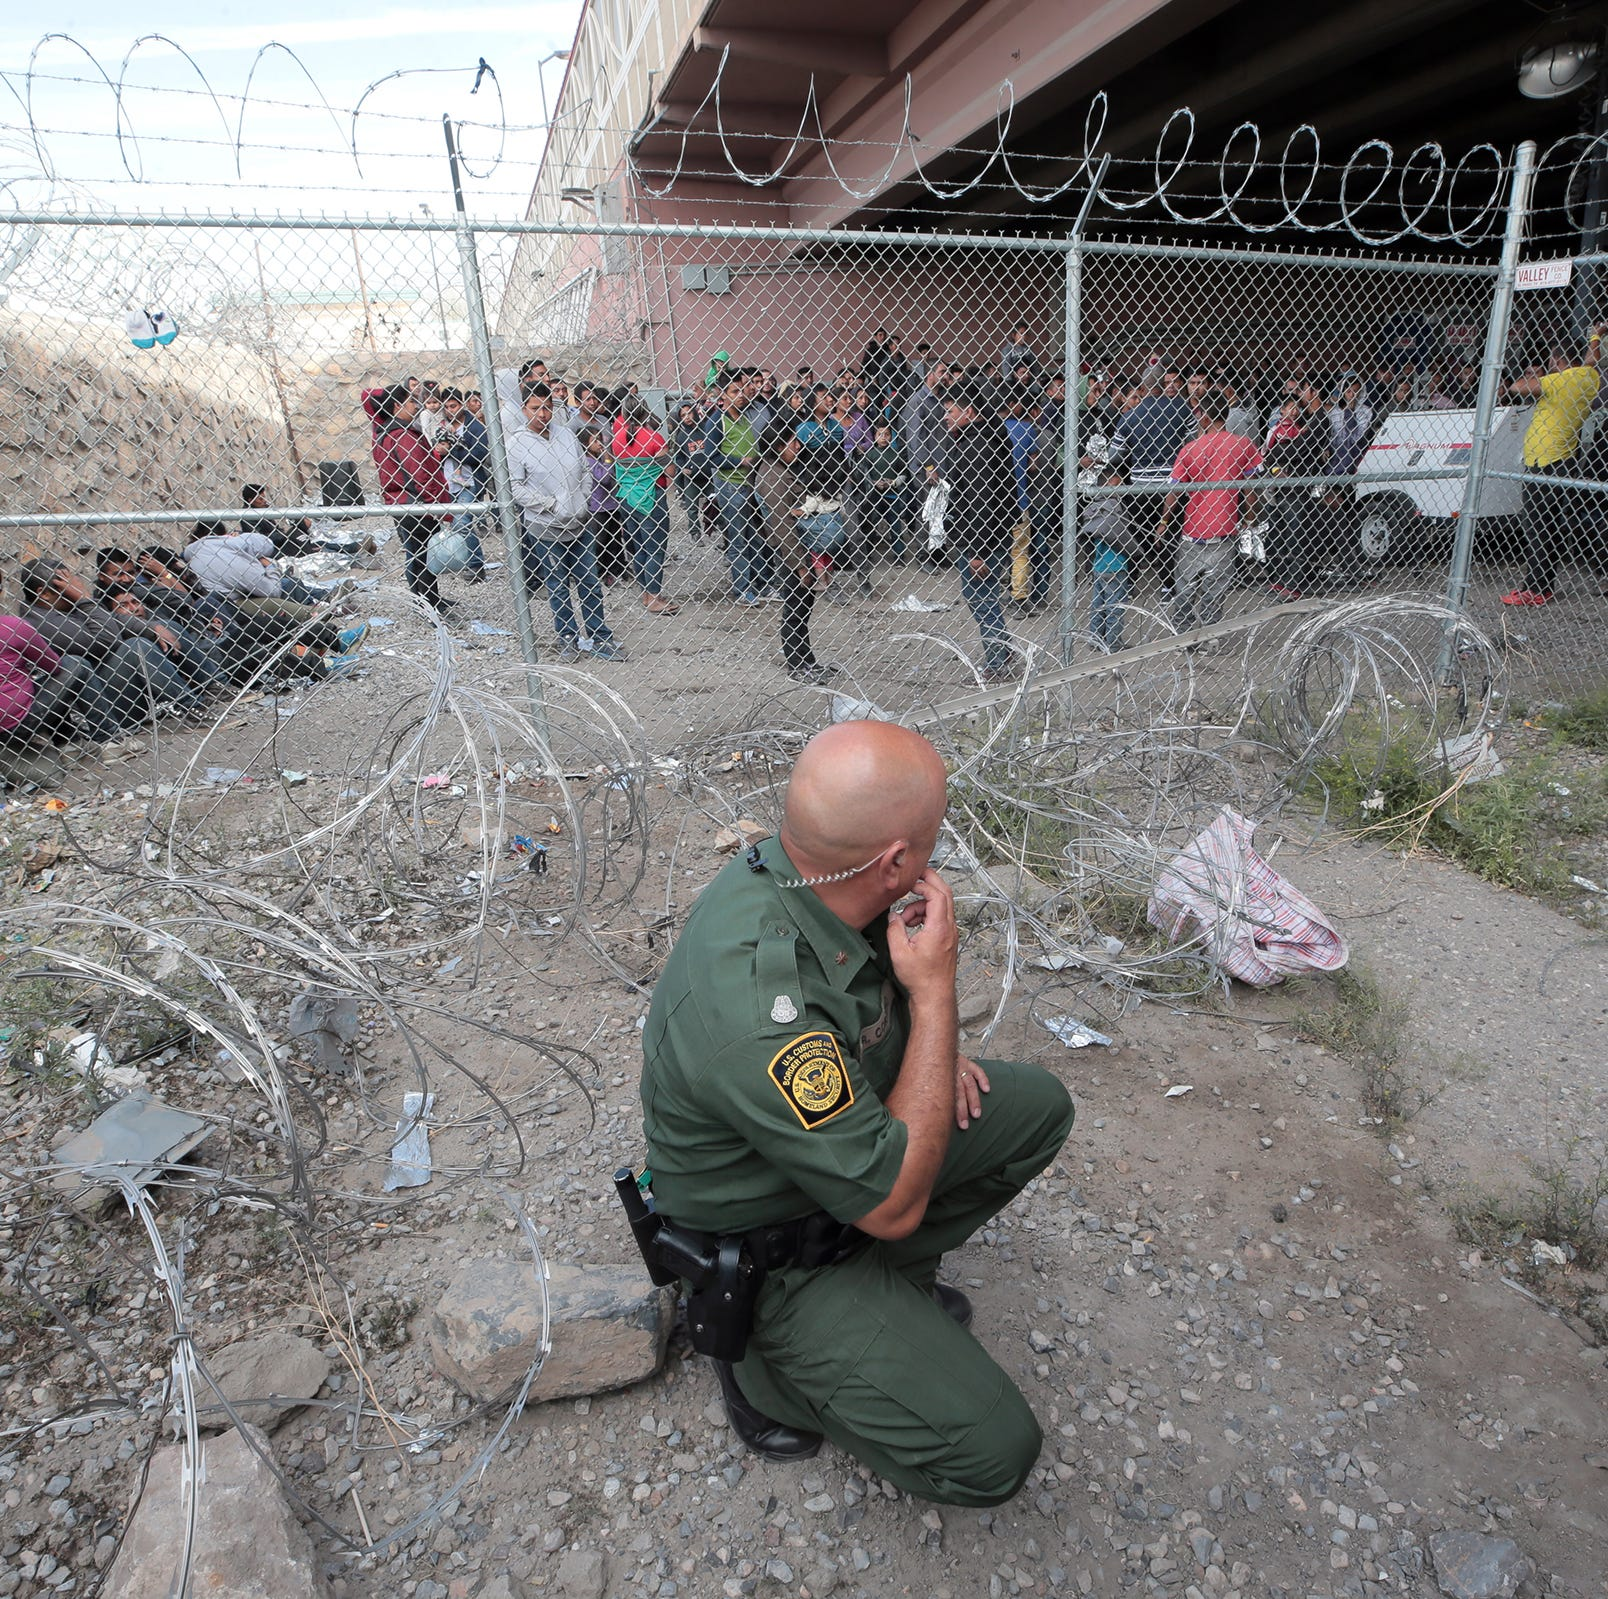 Davis: What kind of nation allows people to be penned in a cage surrounded by barbed wire?